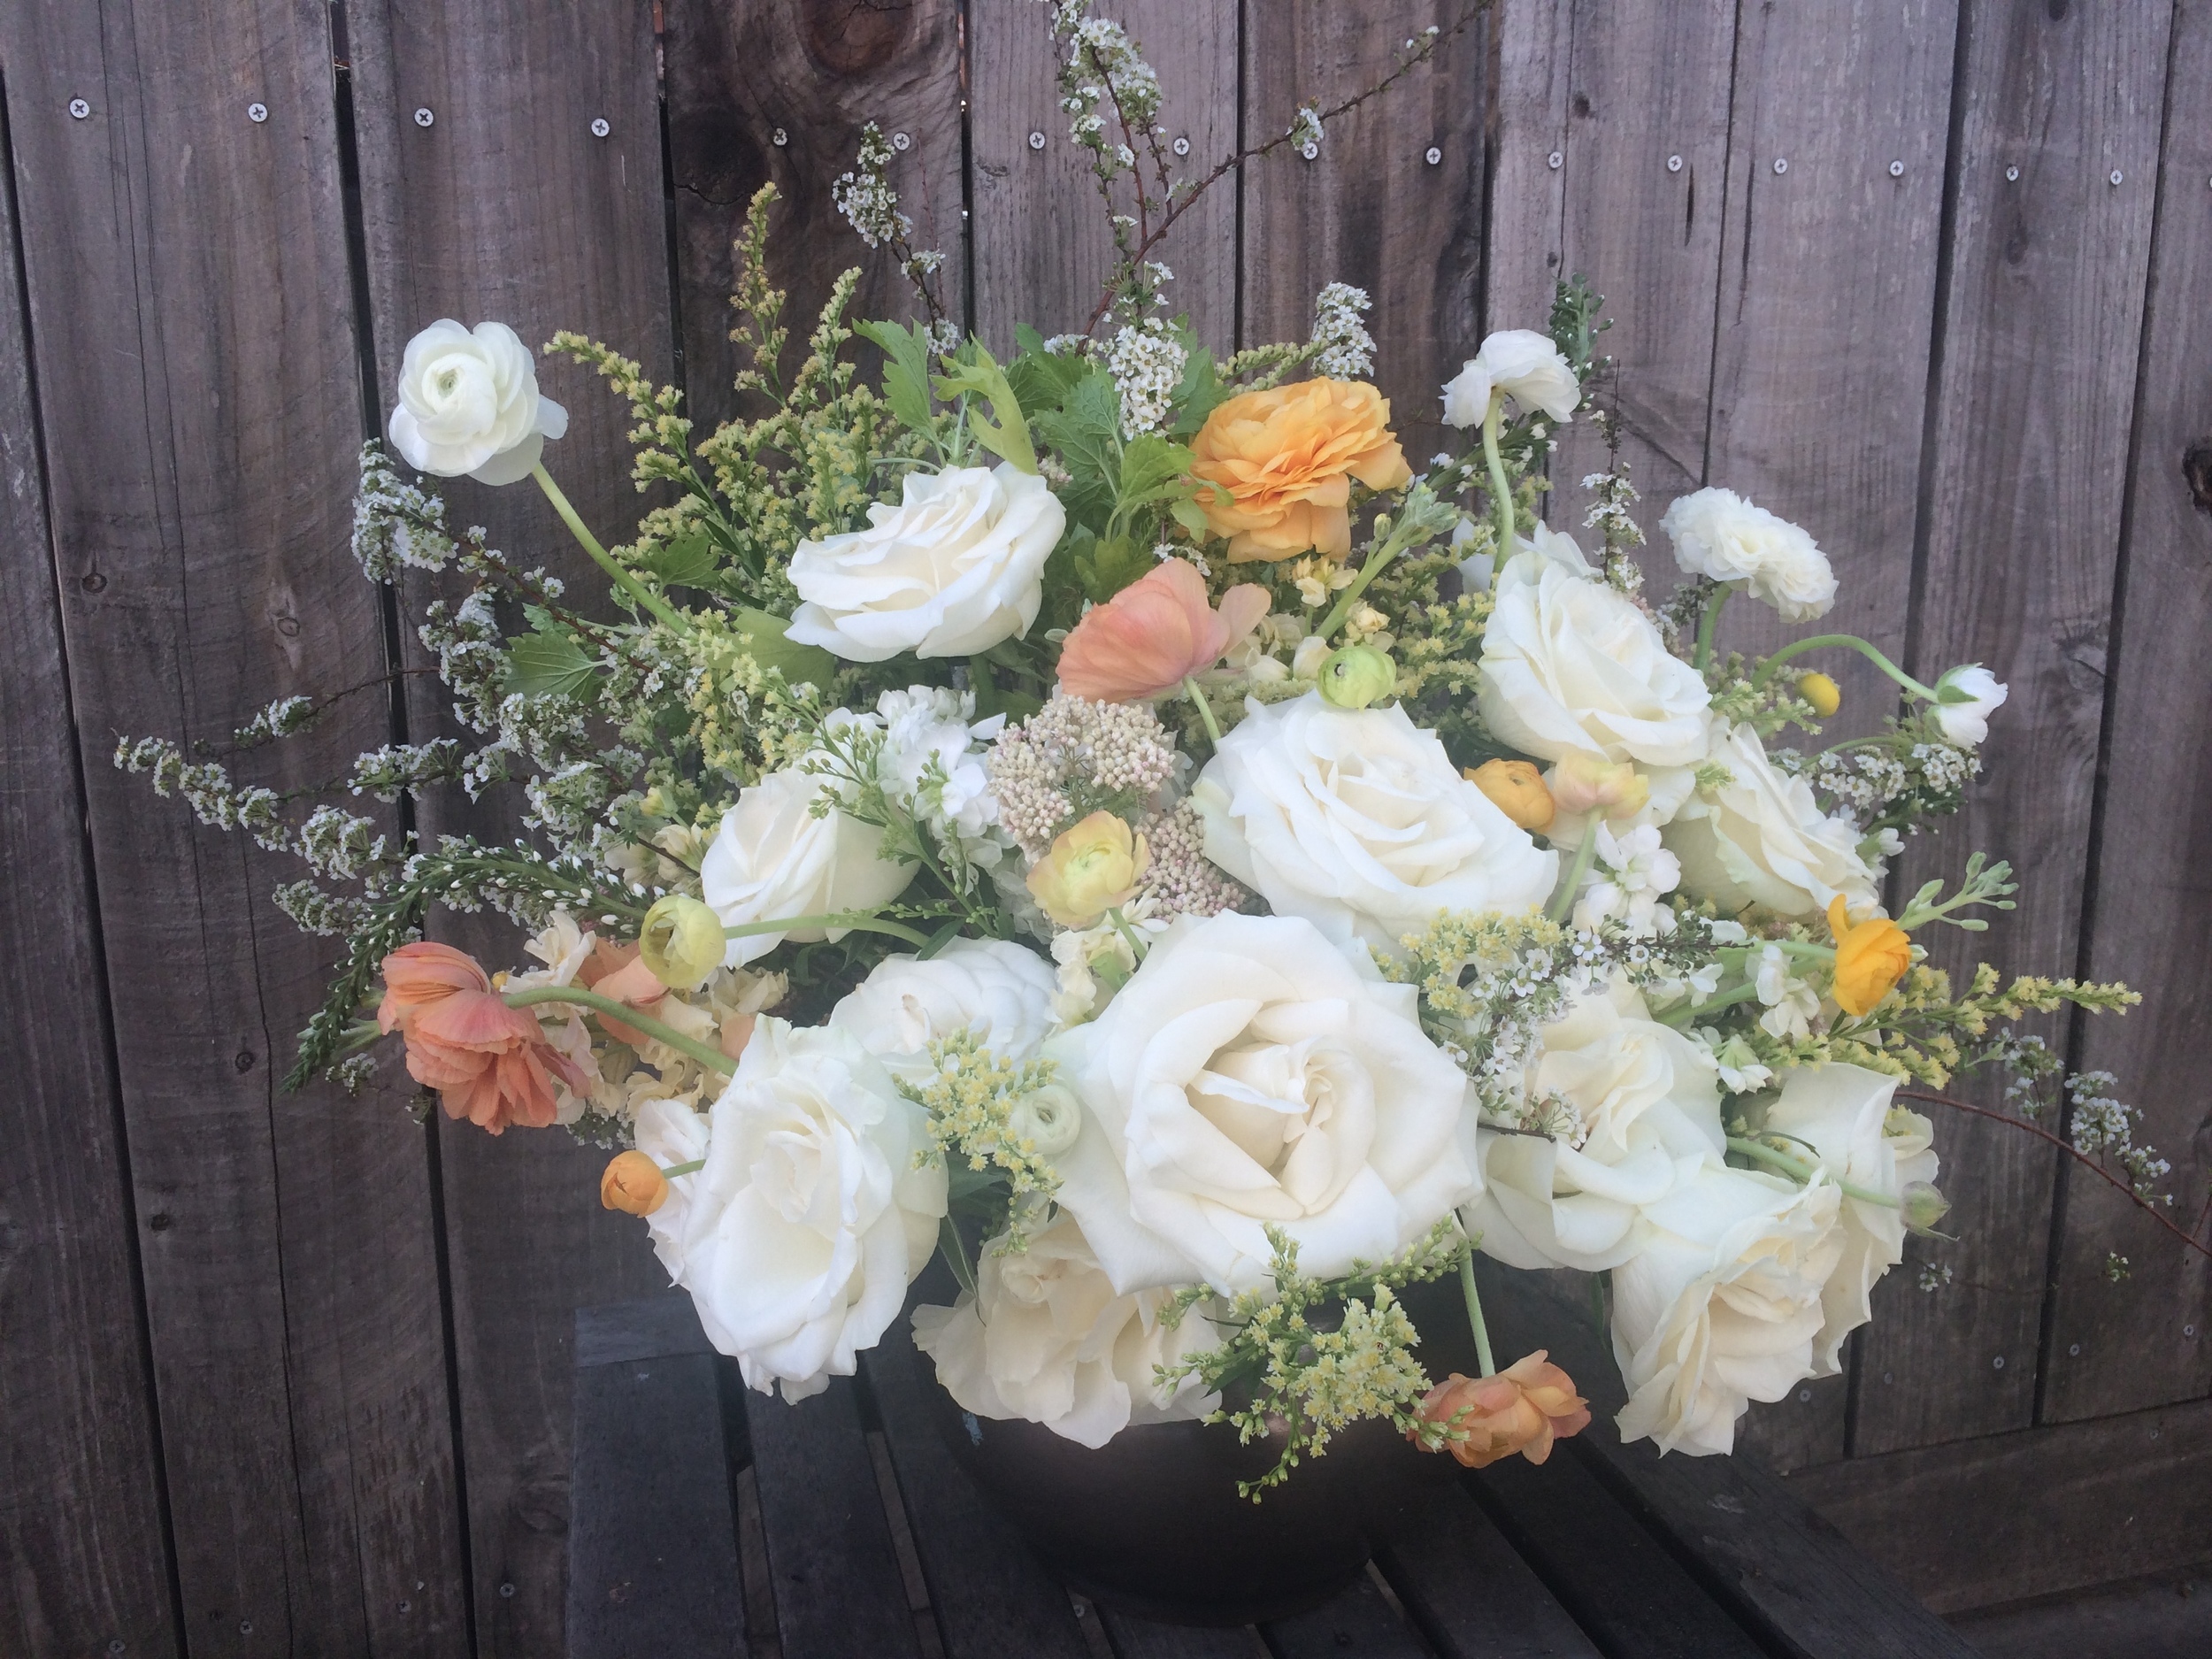 Soft pastels and billowy roses in this English garden themed bridal bouquet.  Event: Private Vow Exchange, Fairfield, CA